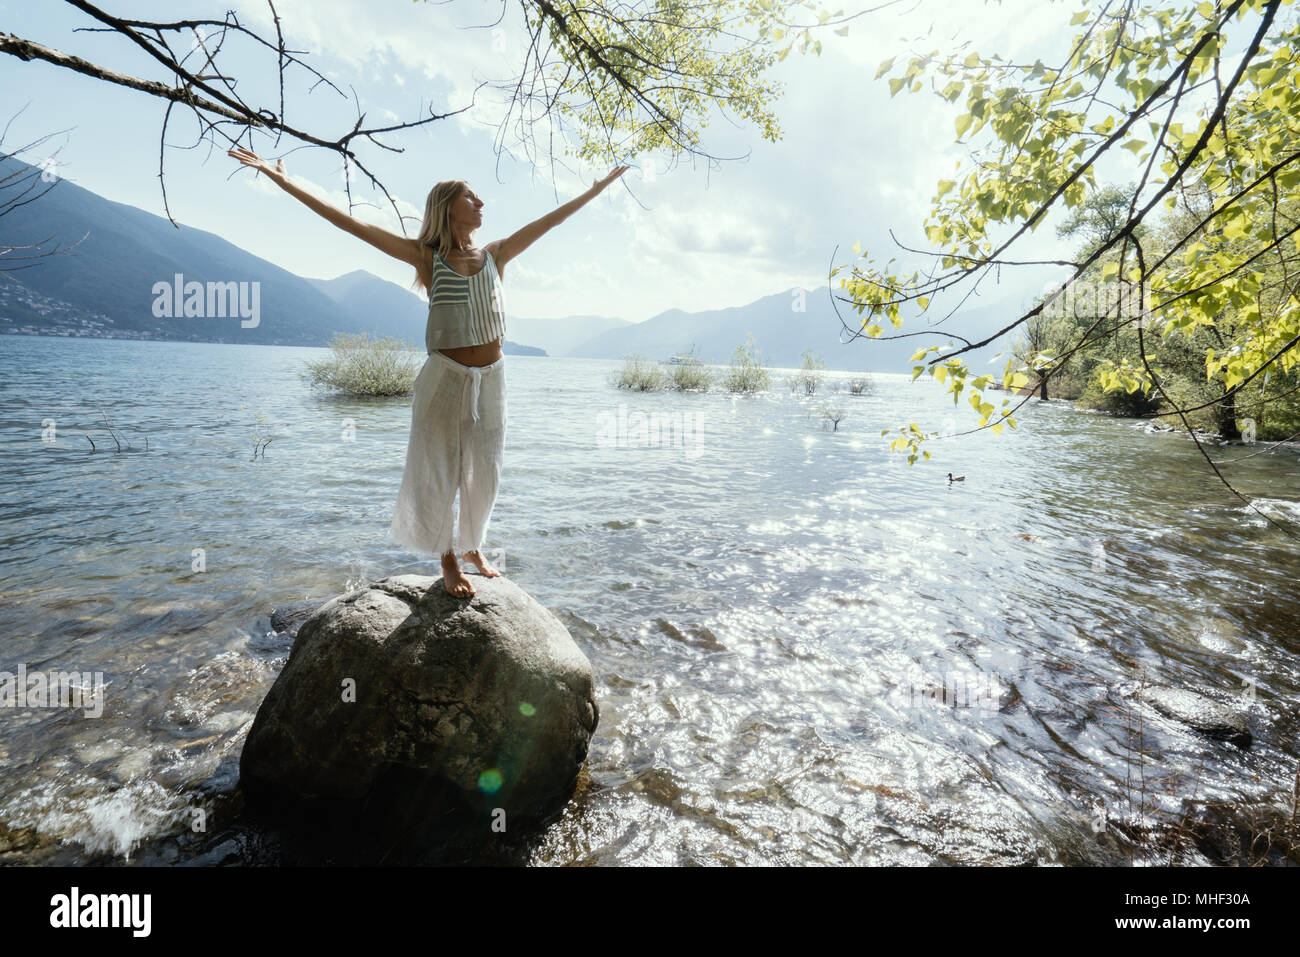 Young woman standing on rock above the lake arms outstretched for freedom and positive emotions. People travel wellbeing carefree concept. Switzerland Stock Photo